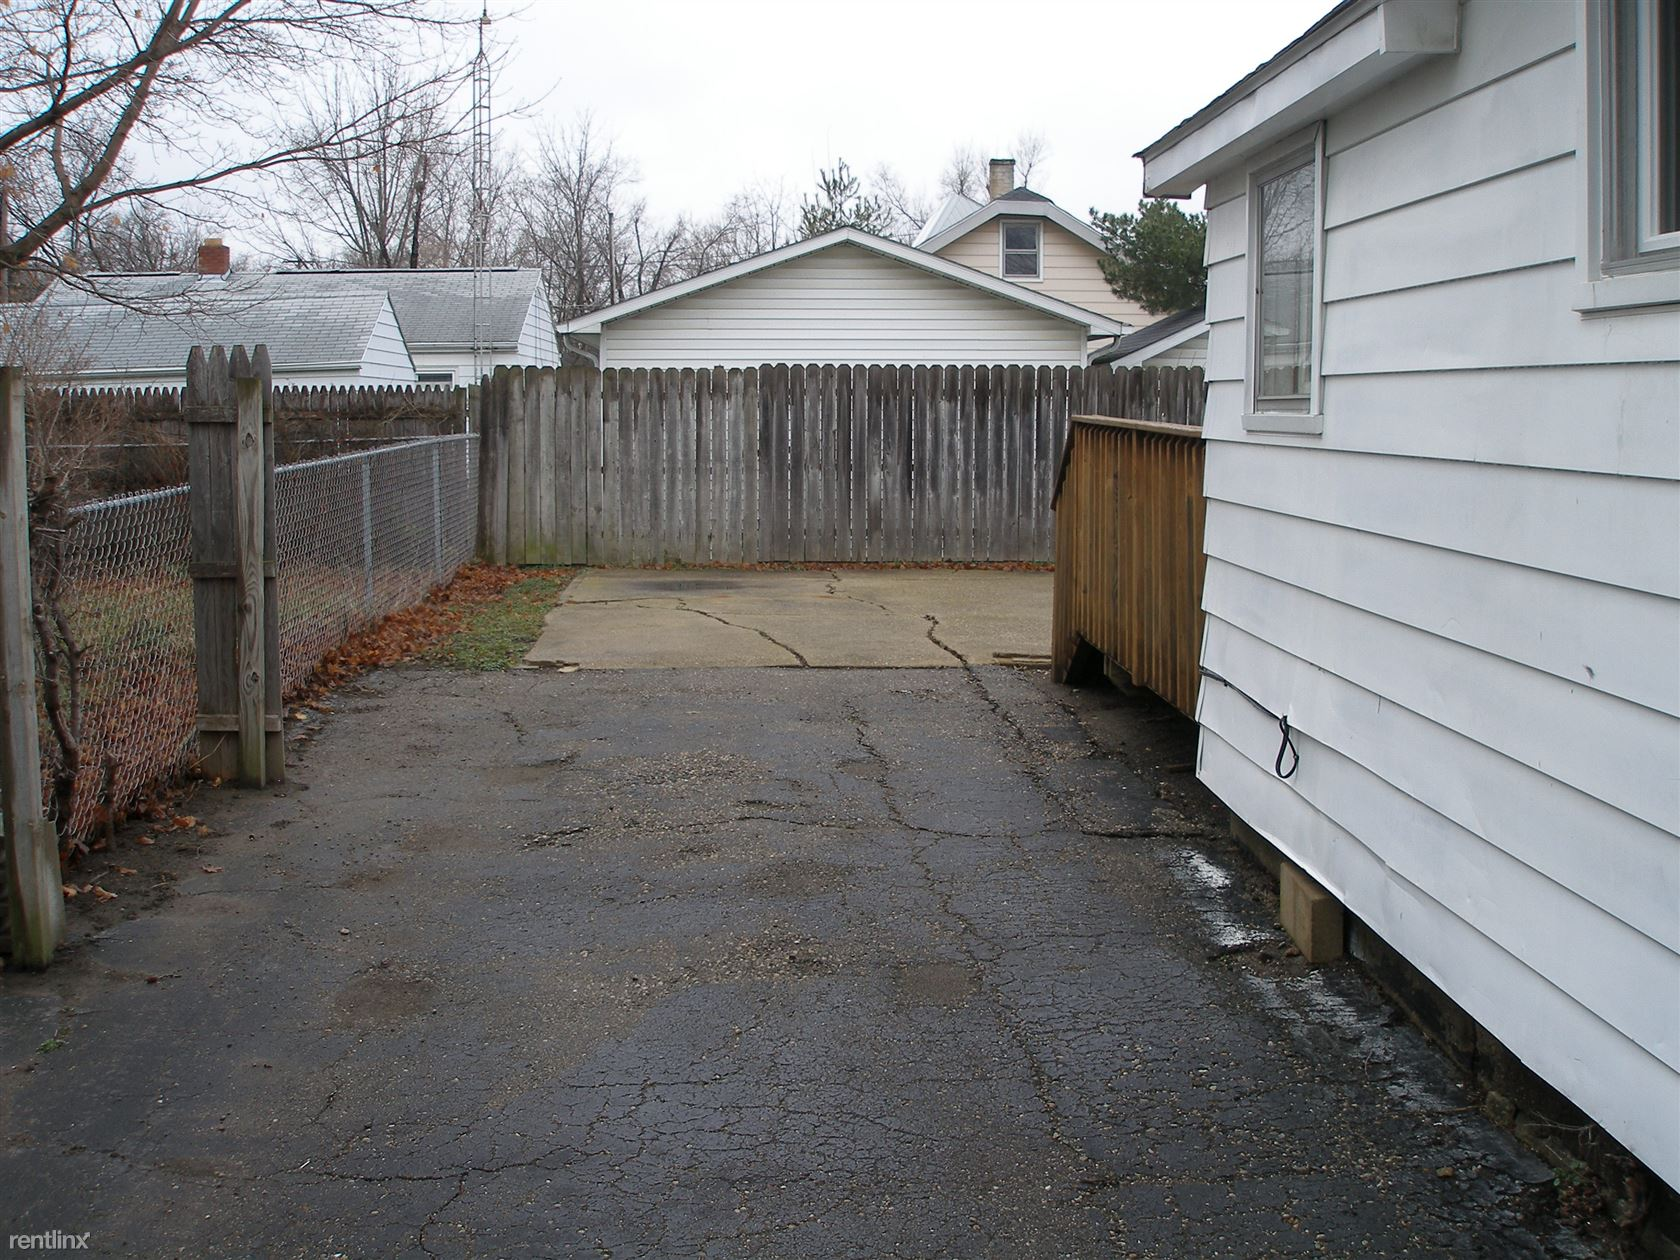 Partial privacy fence